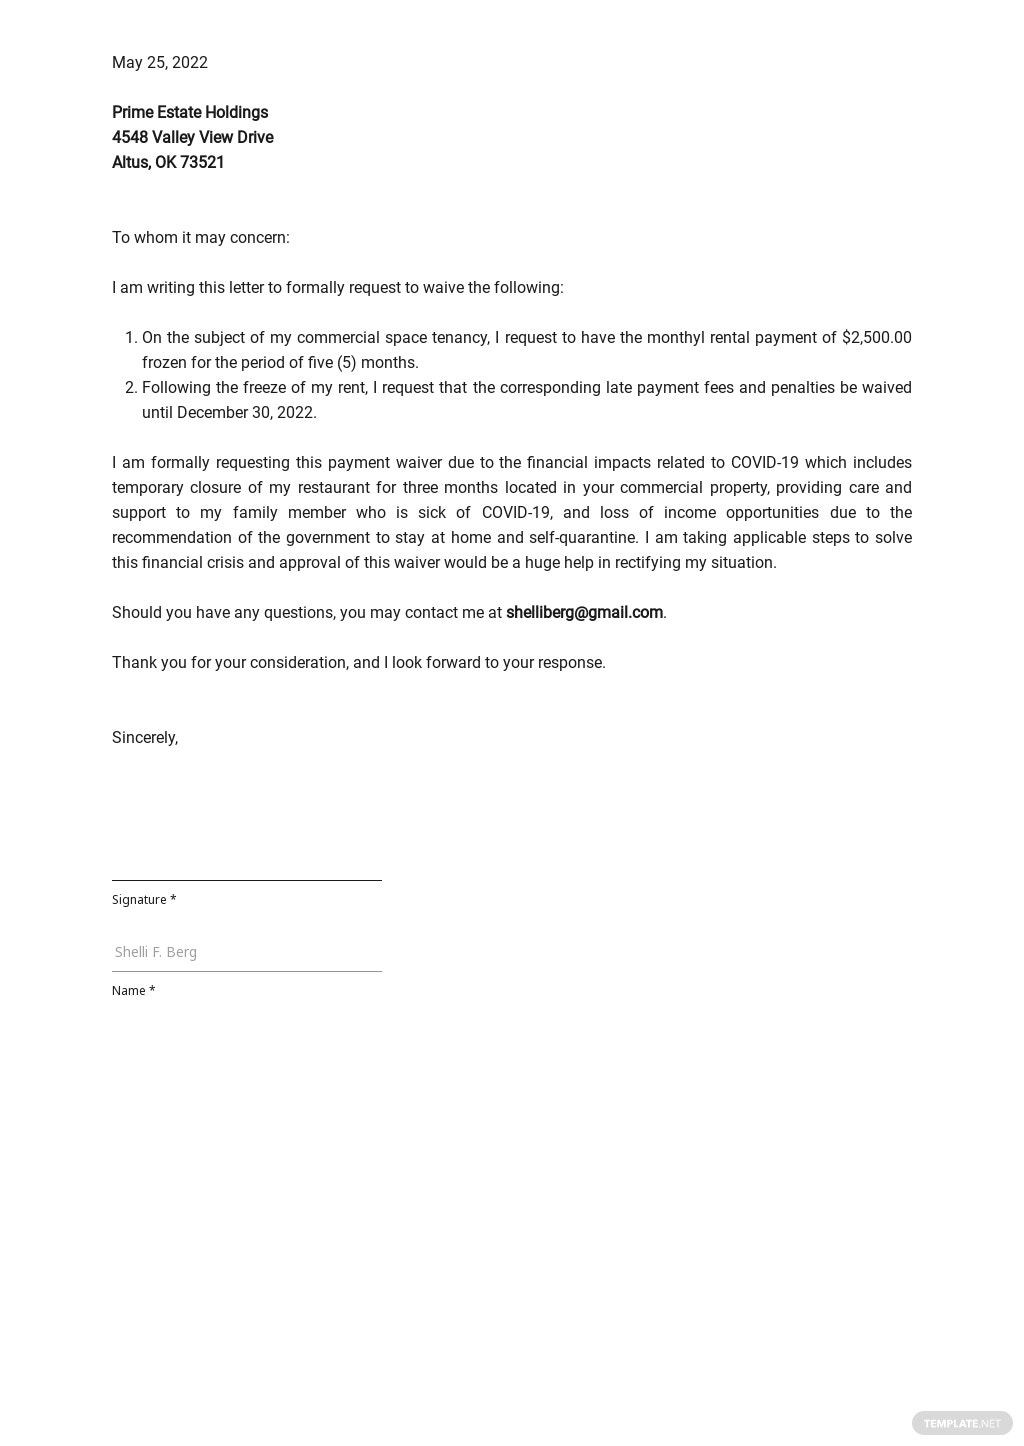 Payment Waiver Letter Template.jpe